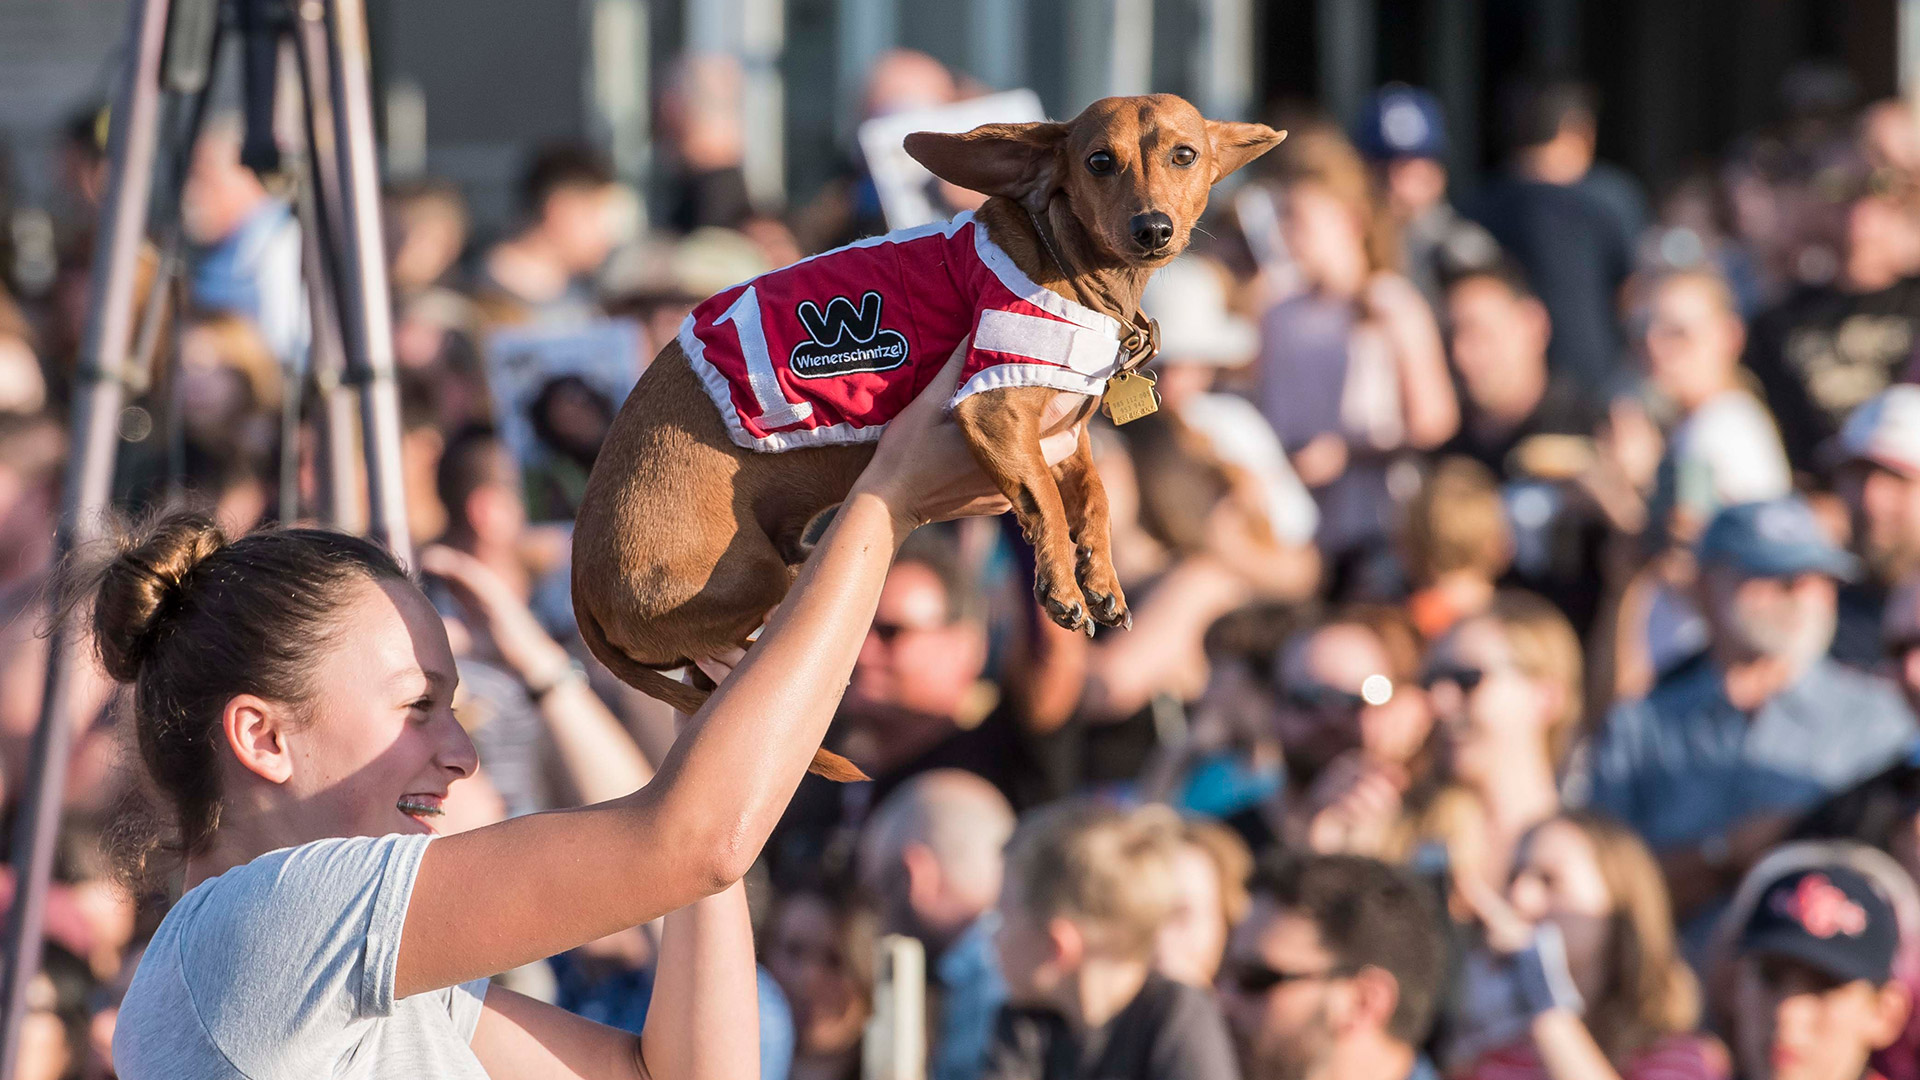 A girl with braces holds up a dachshund wearing a red racing shirt.